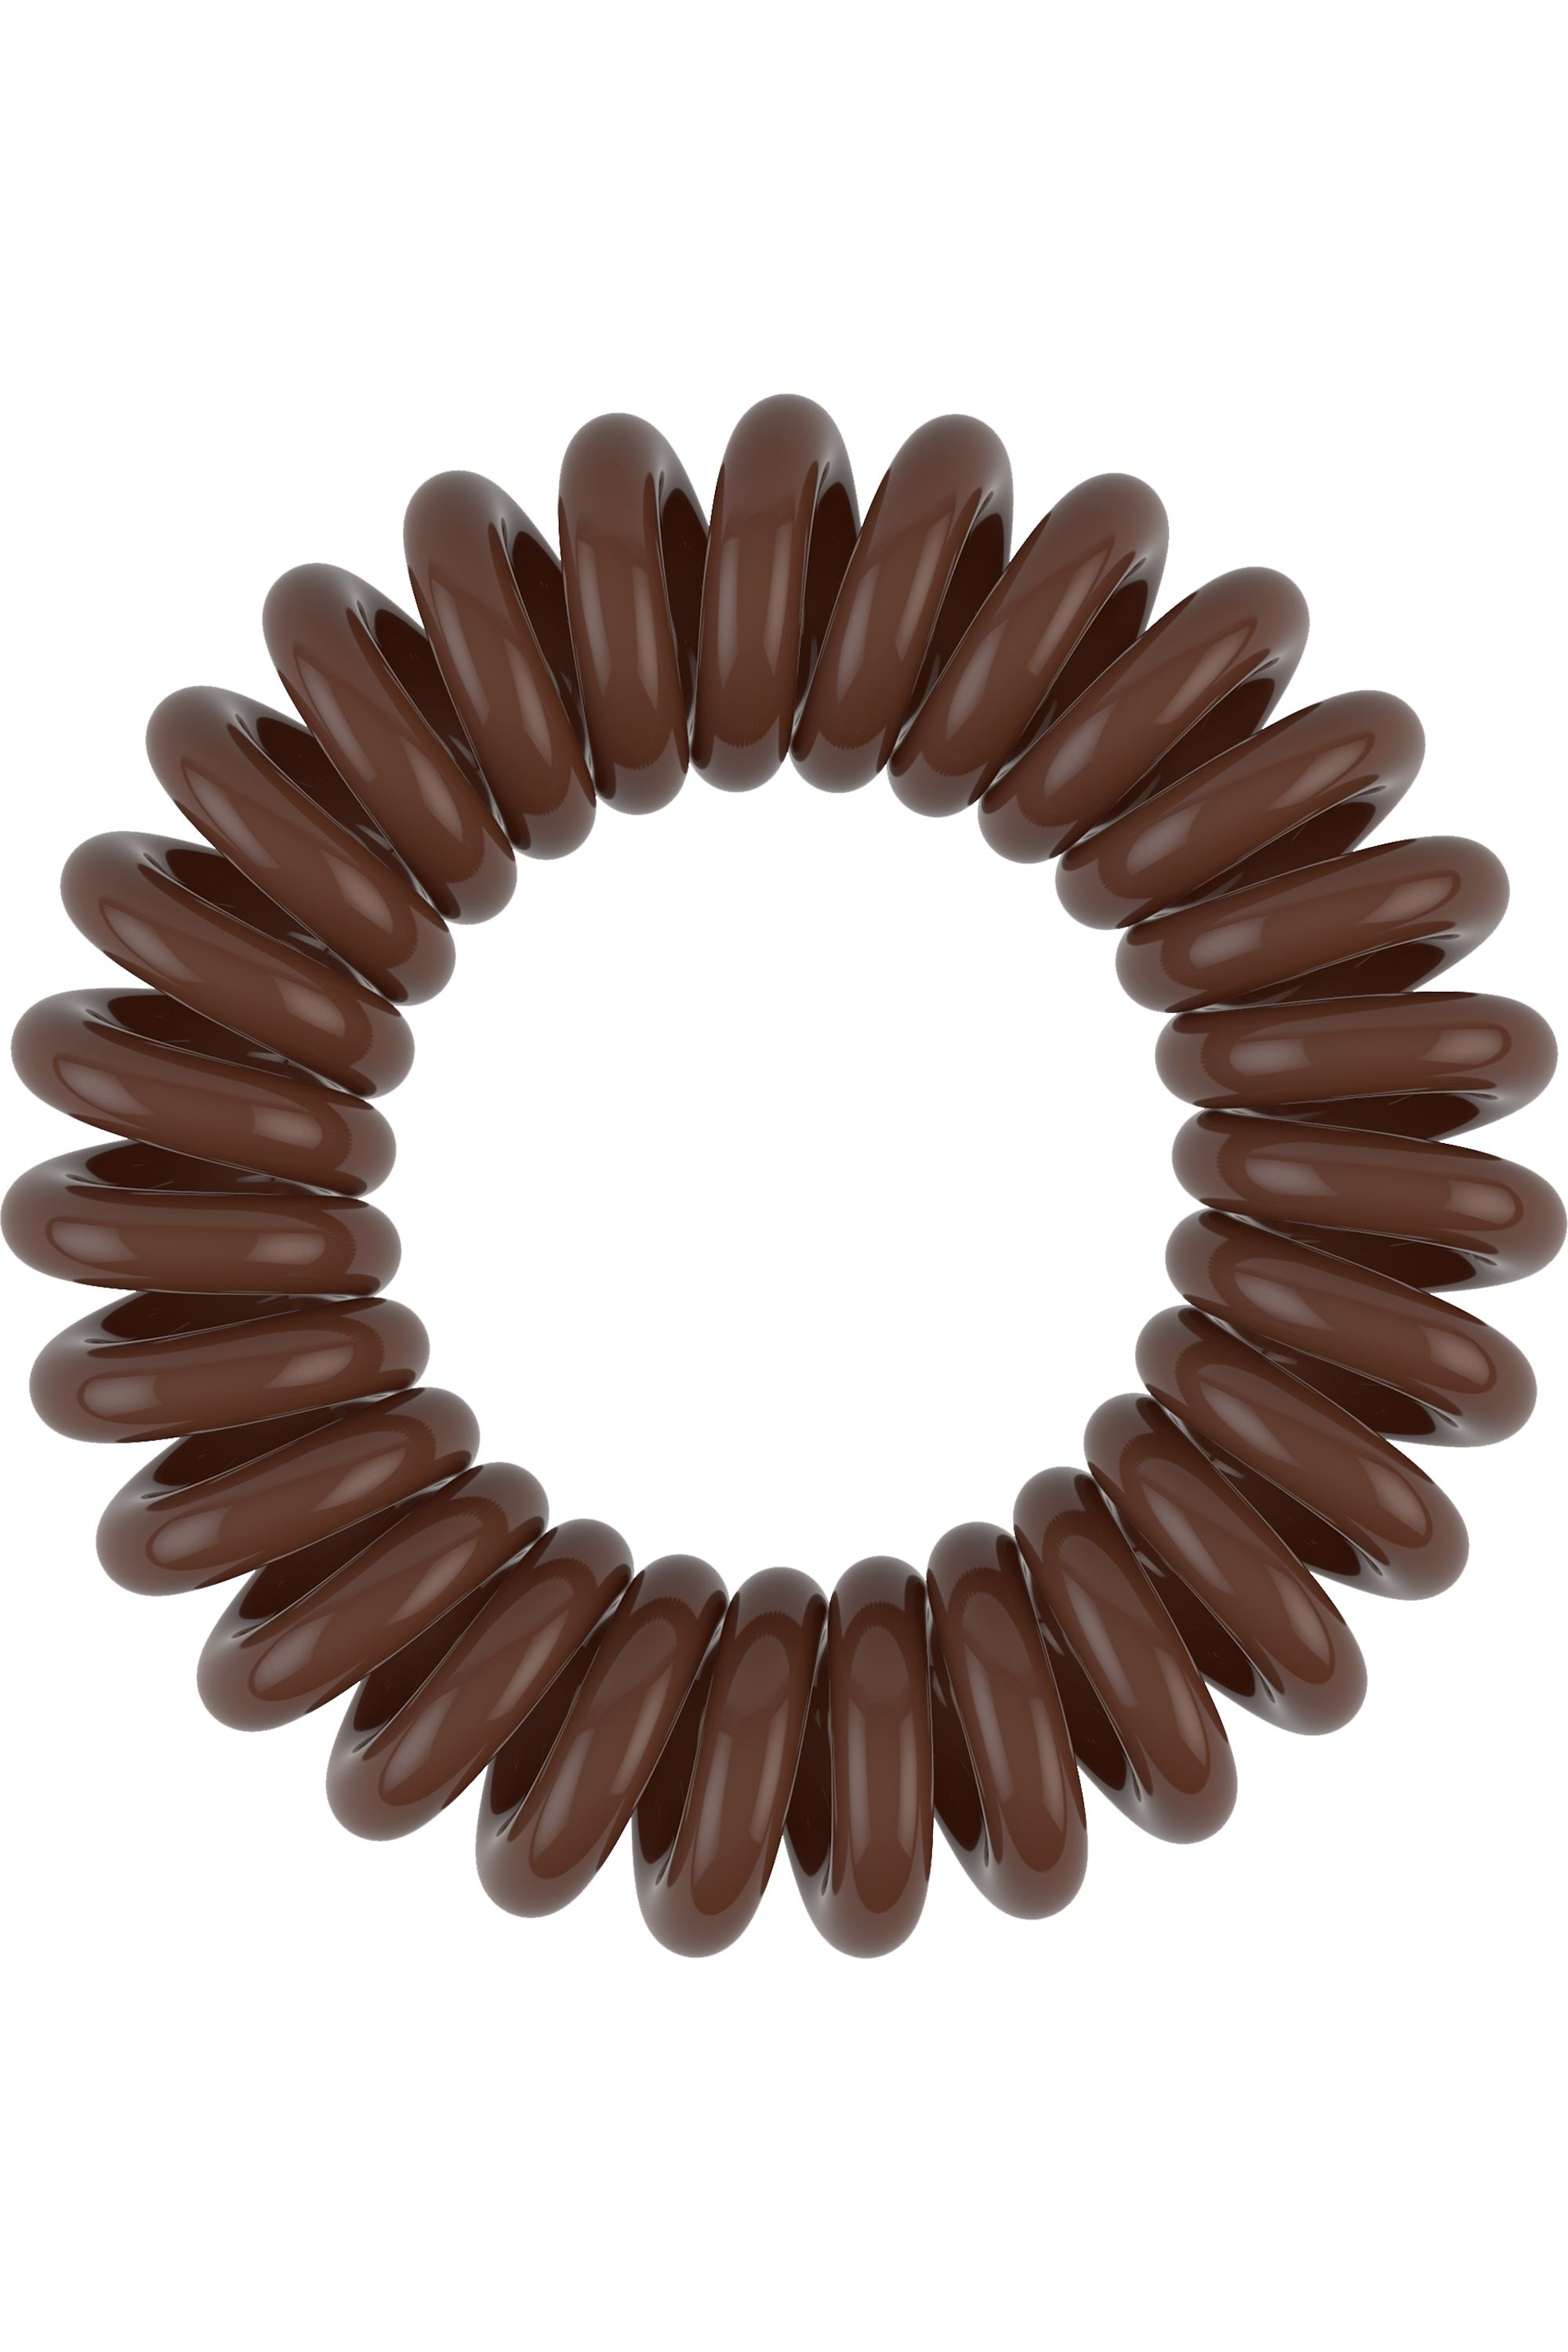 Blissim : Invisibobble - Elastiques cheveux invisible Power - Power Pretzel Brown